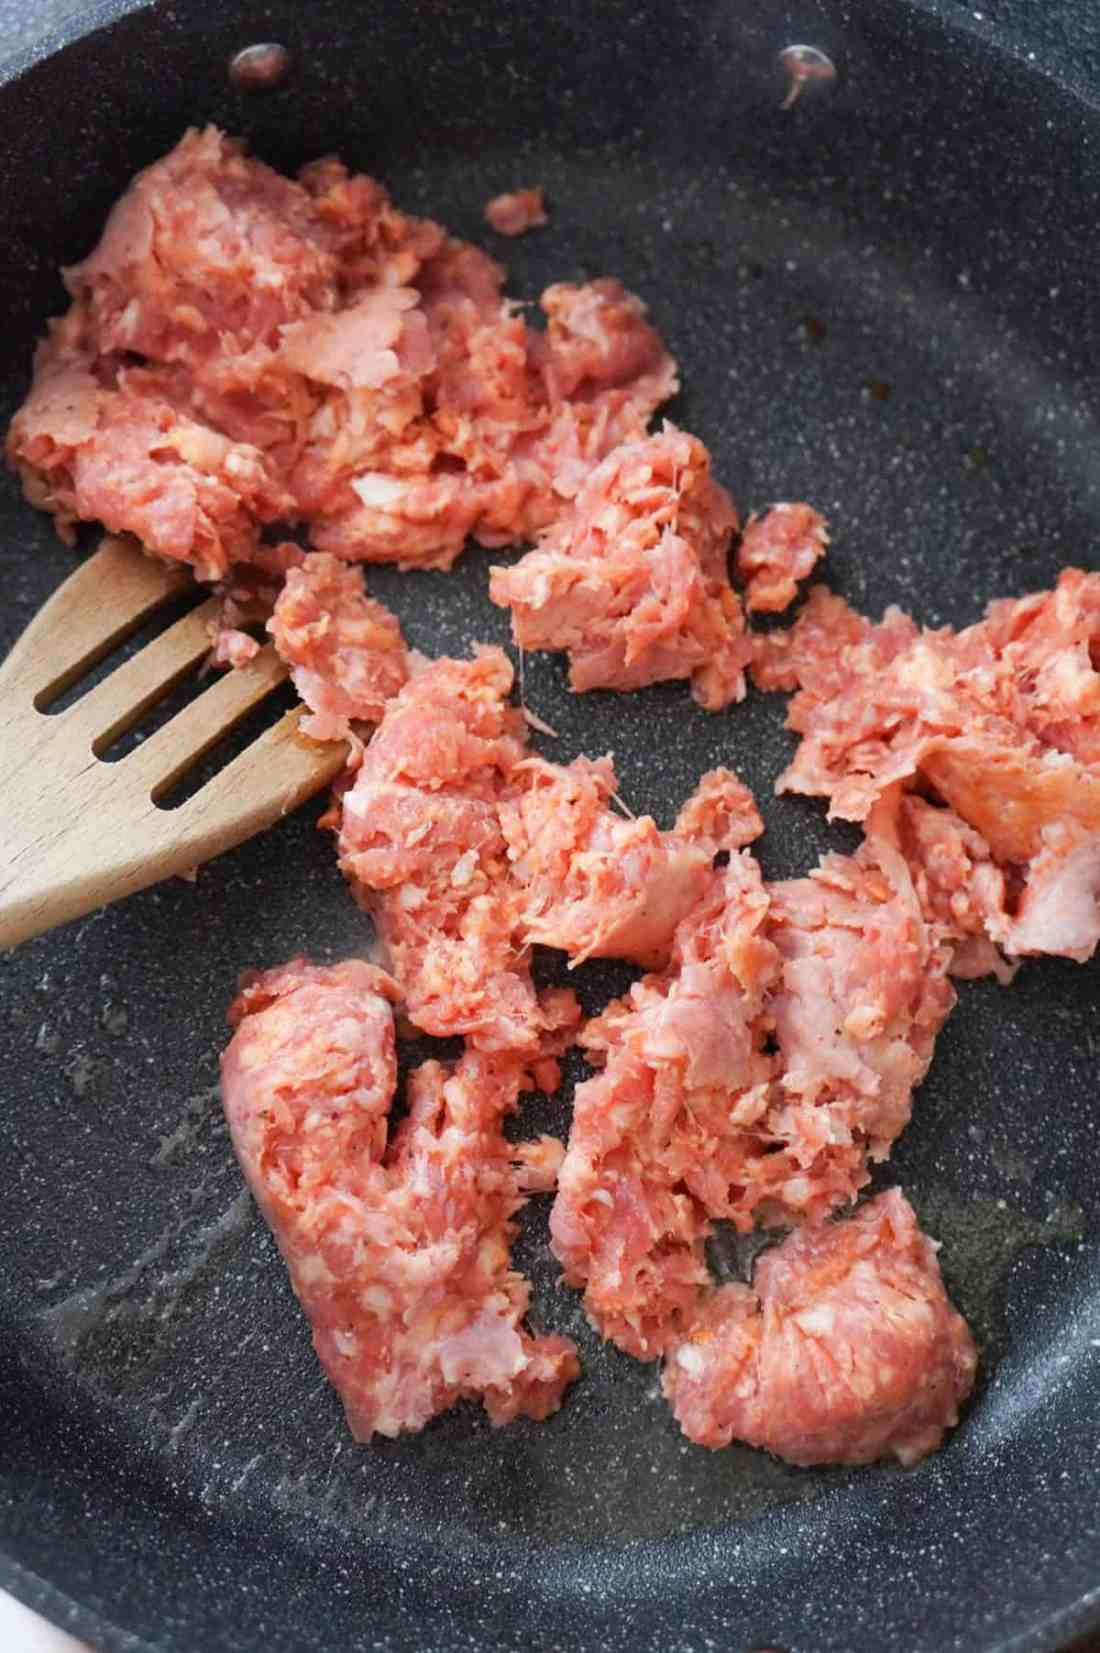 raw Italian sausage meat in a saute pan